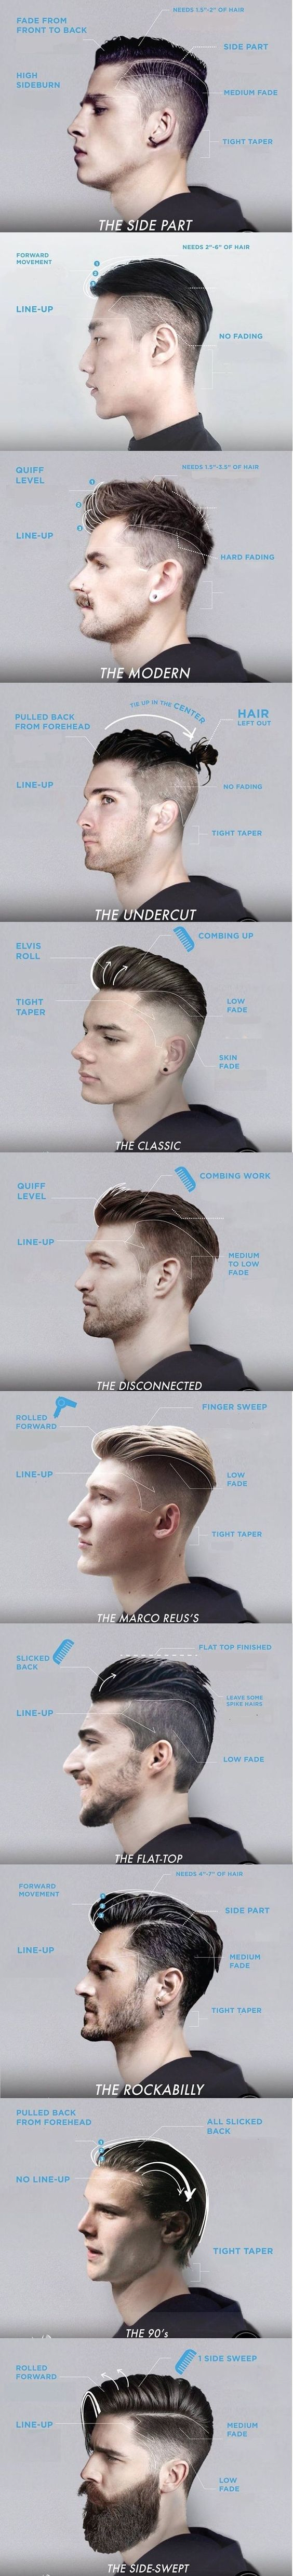 Dear Future Husband, I hope you like these haircuts. Bc you will have one. https://www.facebook.com/shorthaircutstyles/posts/1720104311613342